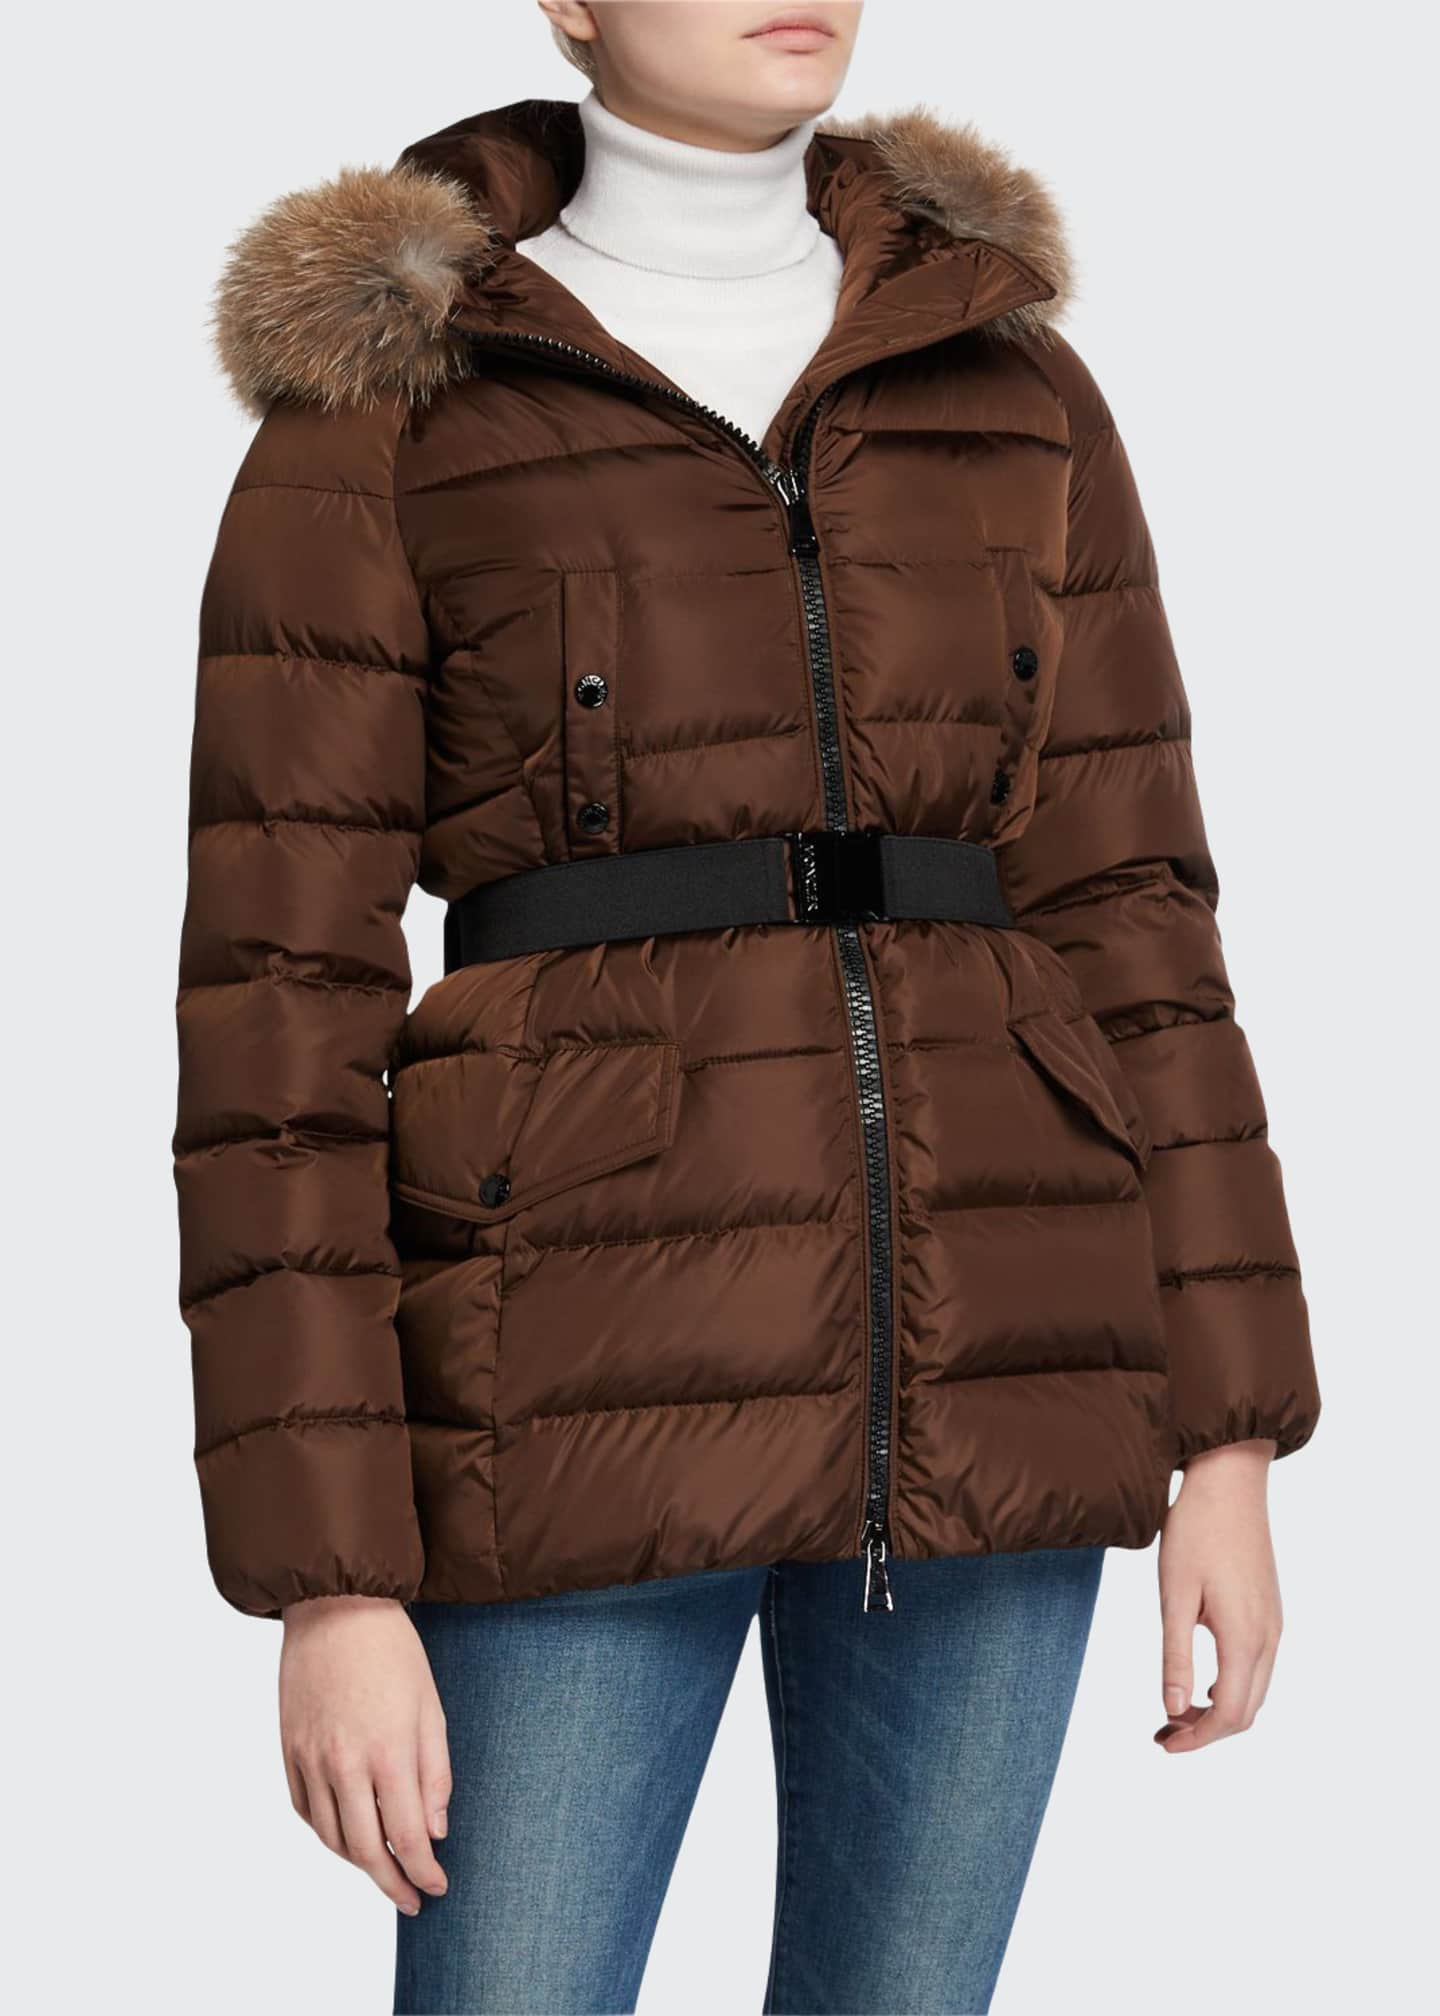 Moncler Clion Belted Puffer Jacket w/ Fur Hood